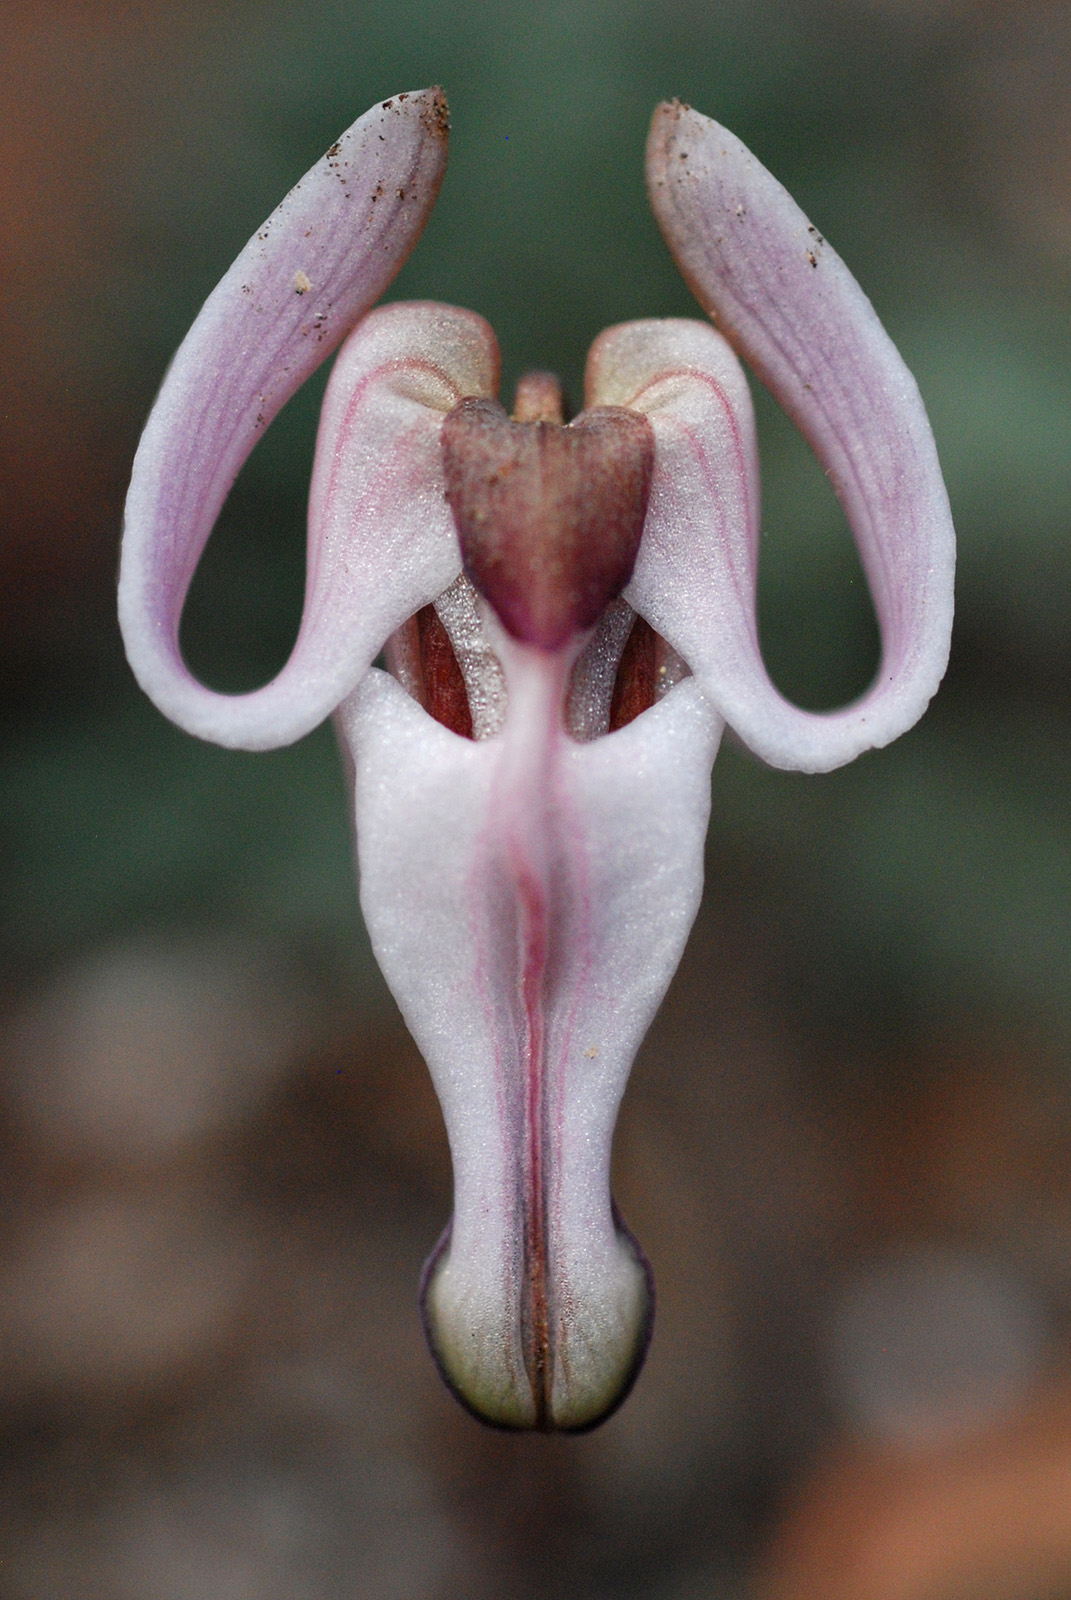 The flower of <i>Dicentra uniflora</i>